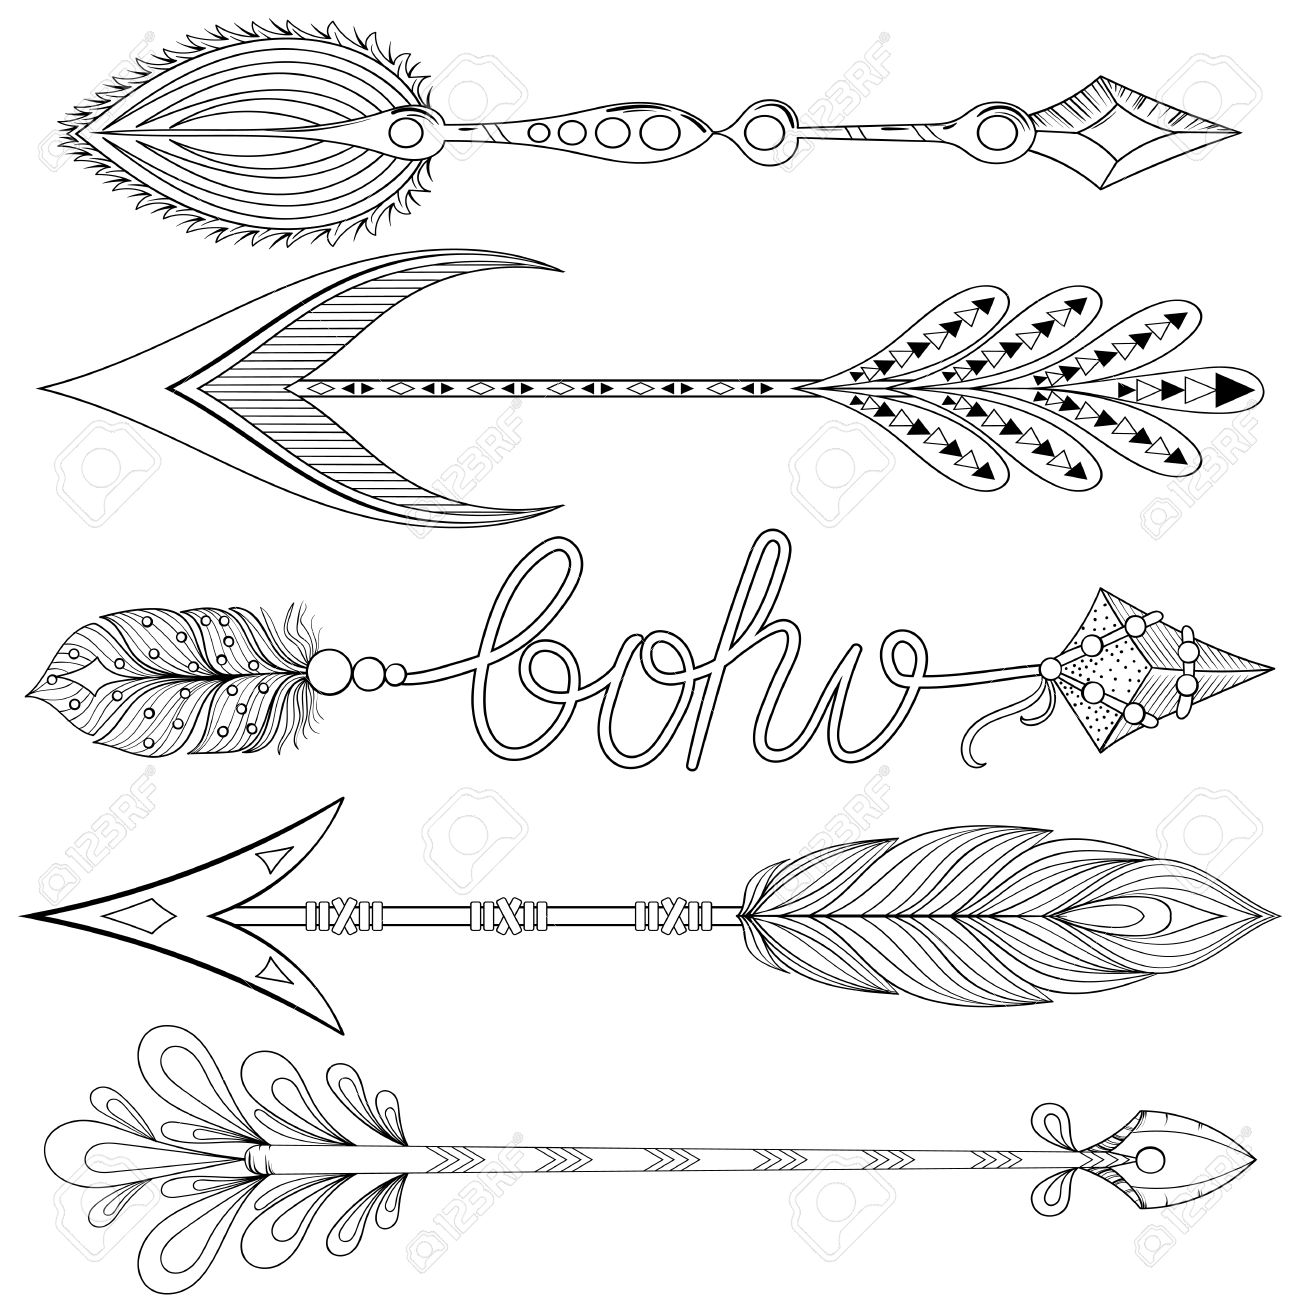 bohemian arrows set with feathers hand drawn decorative arrows